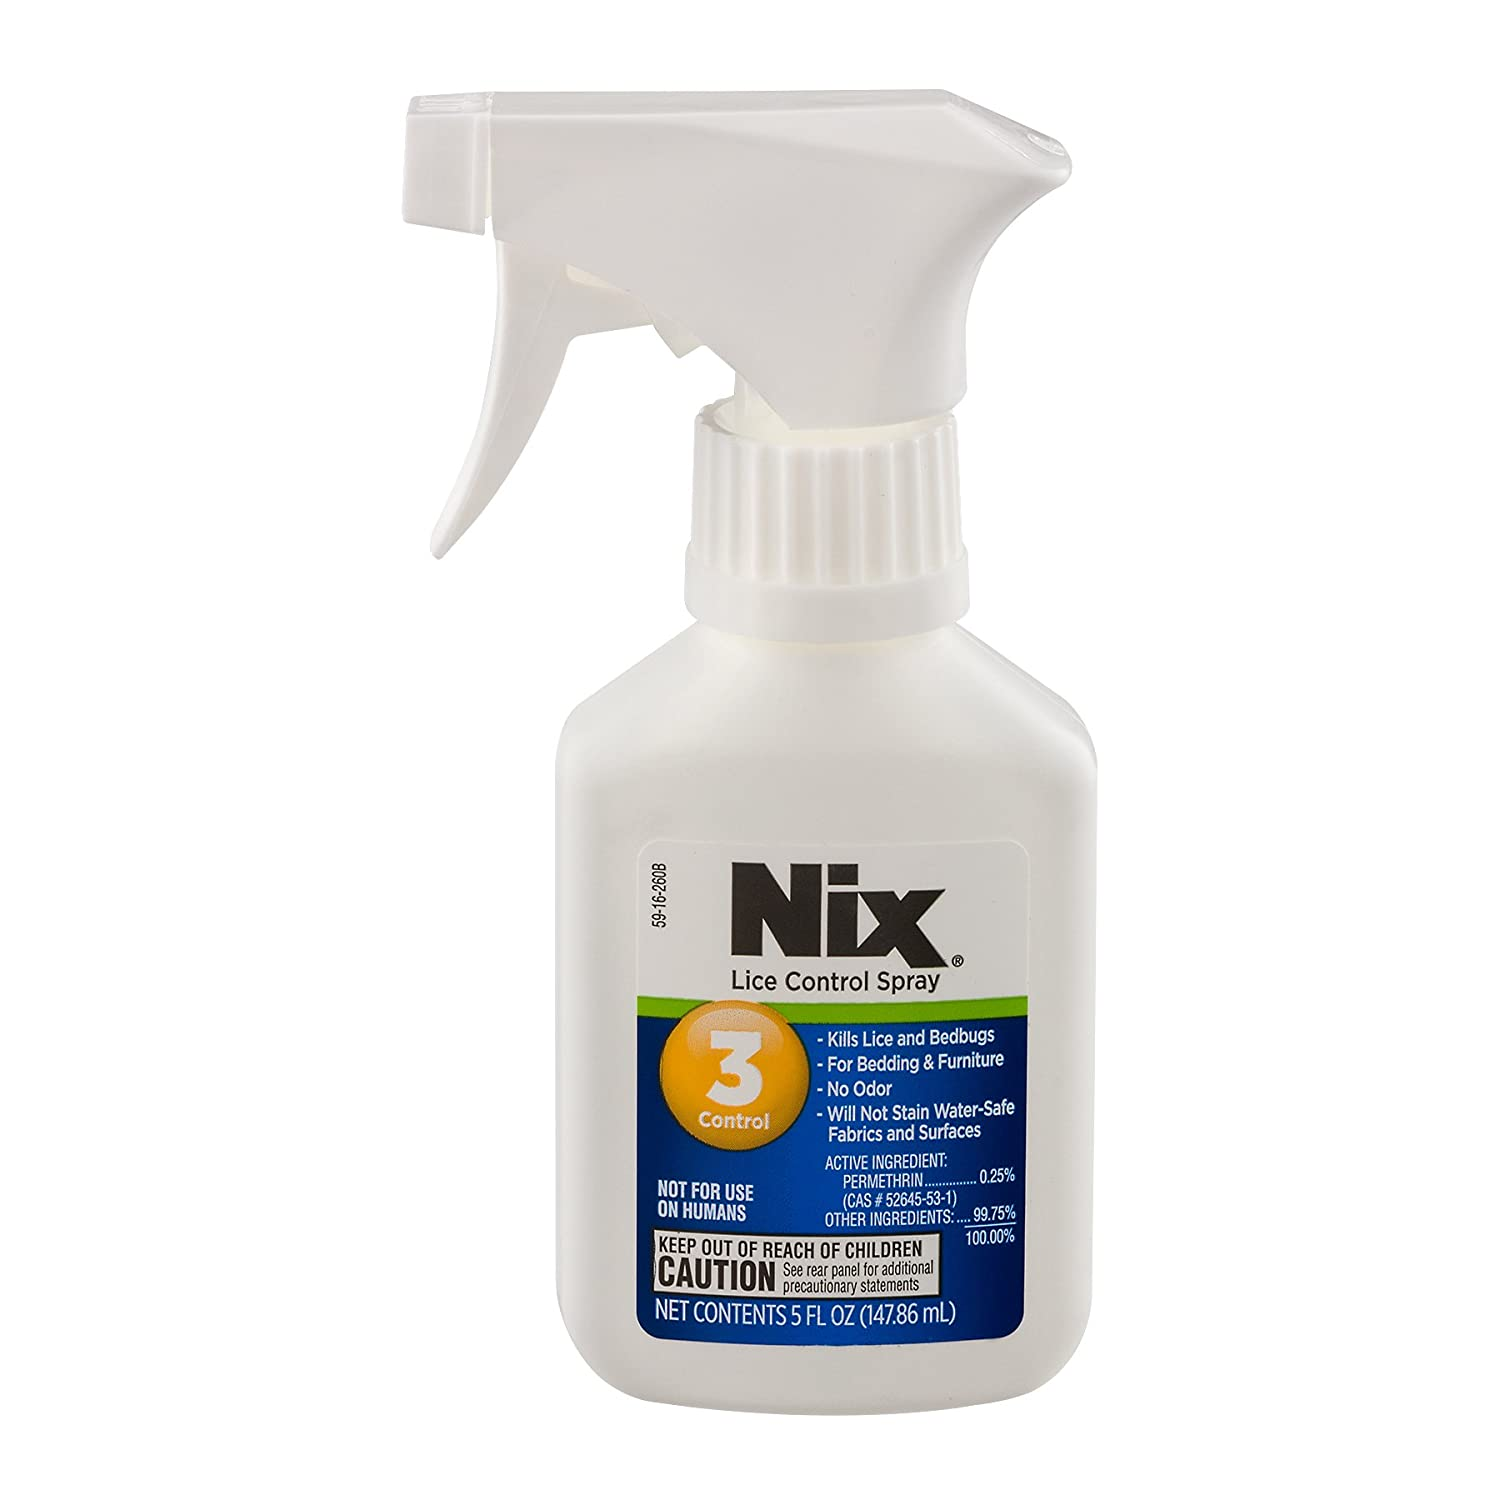 Amazon com  Nix Lice Control Spray   Kills Lice and Bedbugs on Bedding and  Furniture   Odorless and Stainless   5 Fluid Ounces  Health   Personal Care. Amazon com  Nix Lice Control Spray   Kills Lice and Bedbugs on